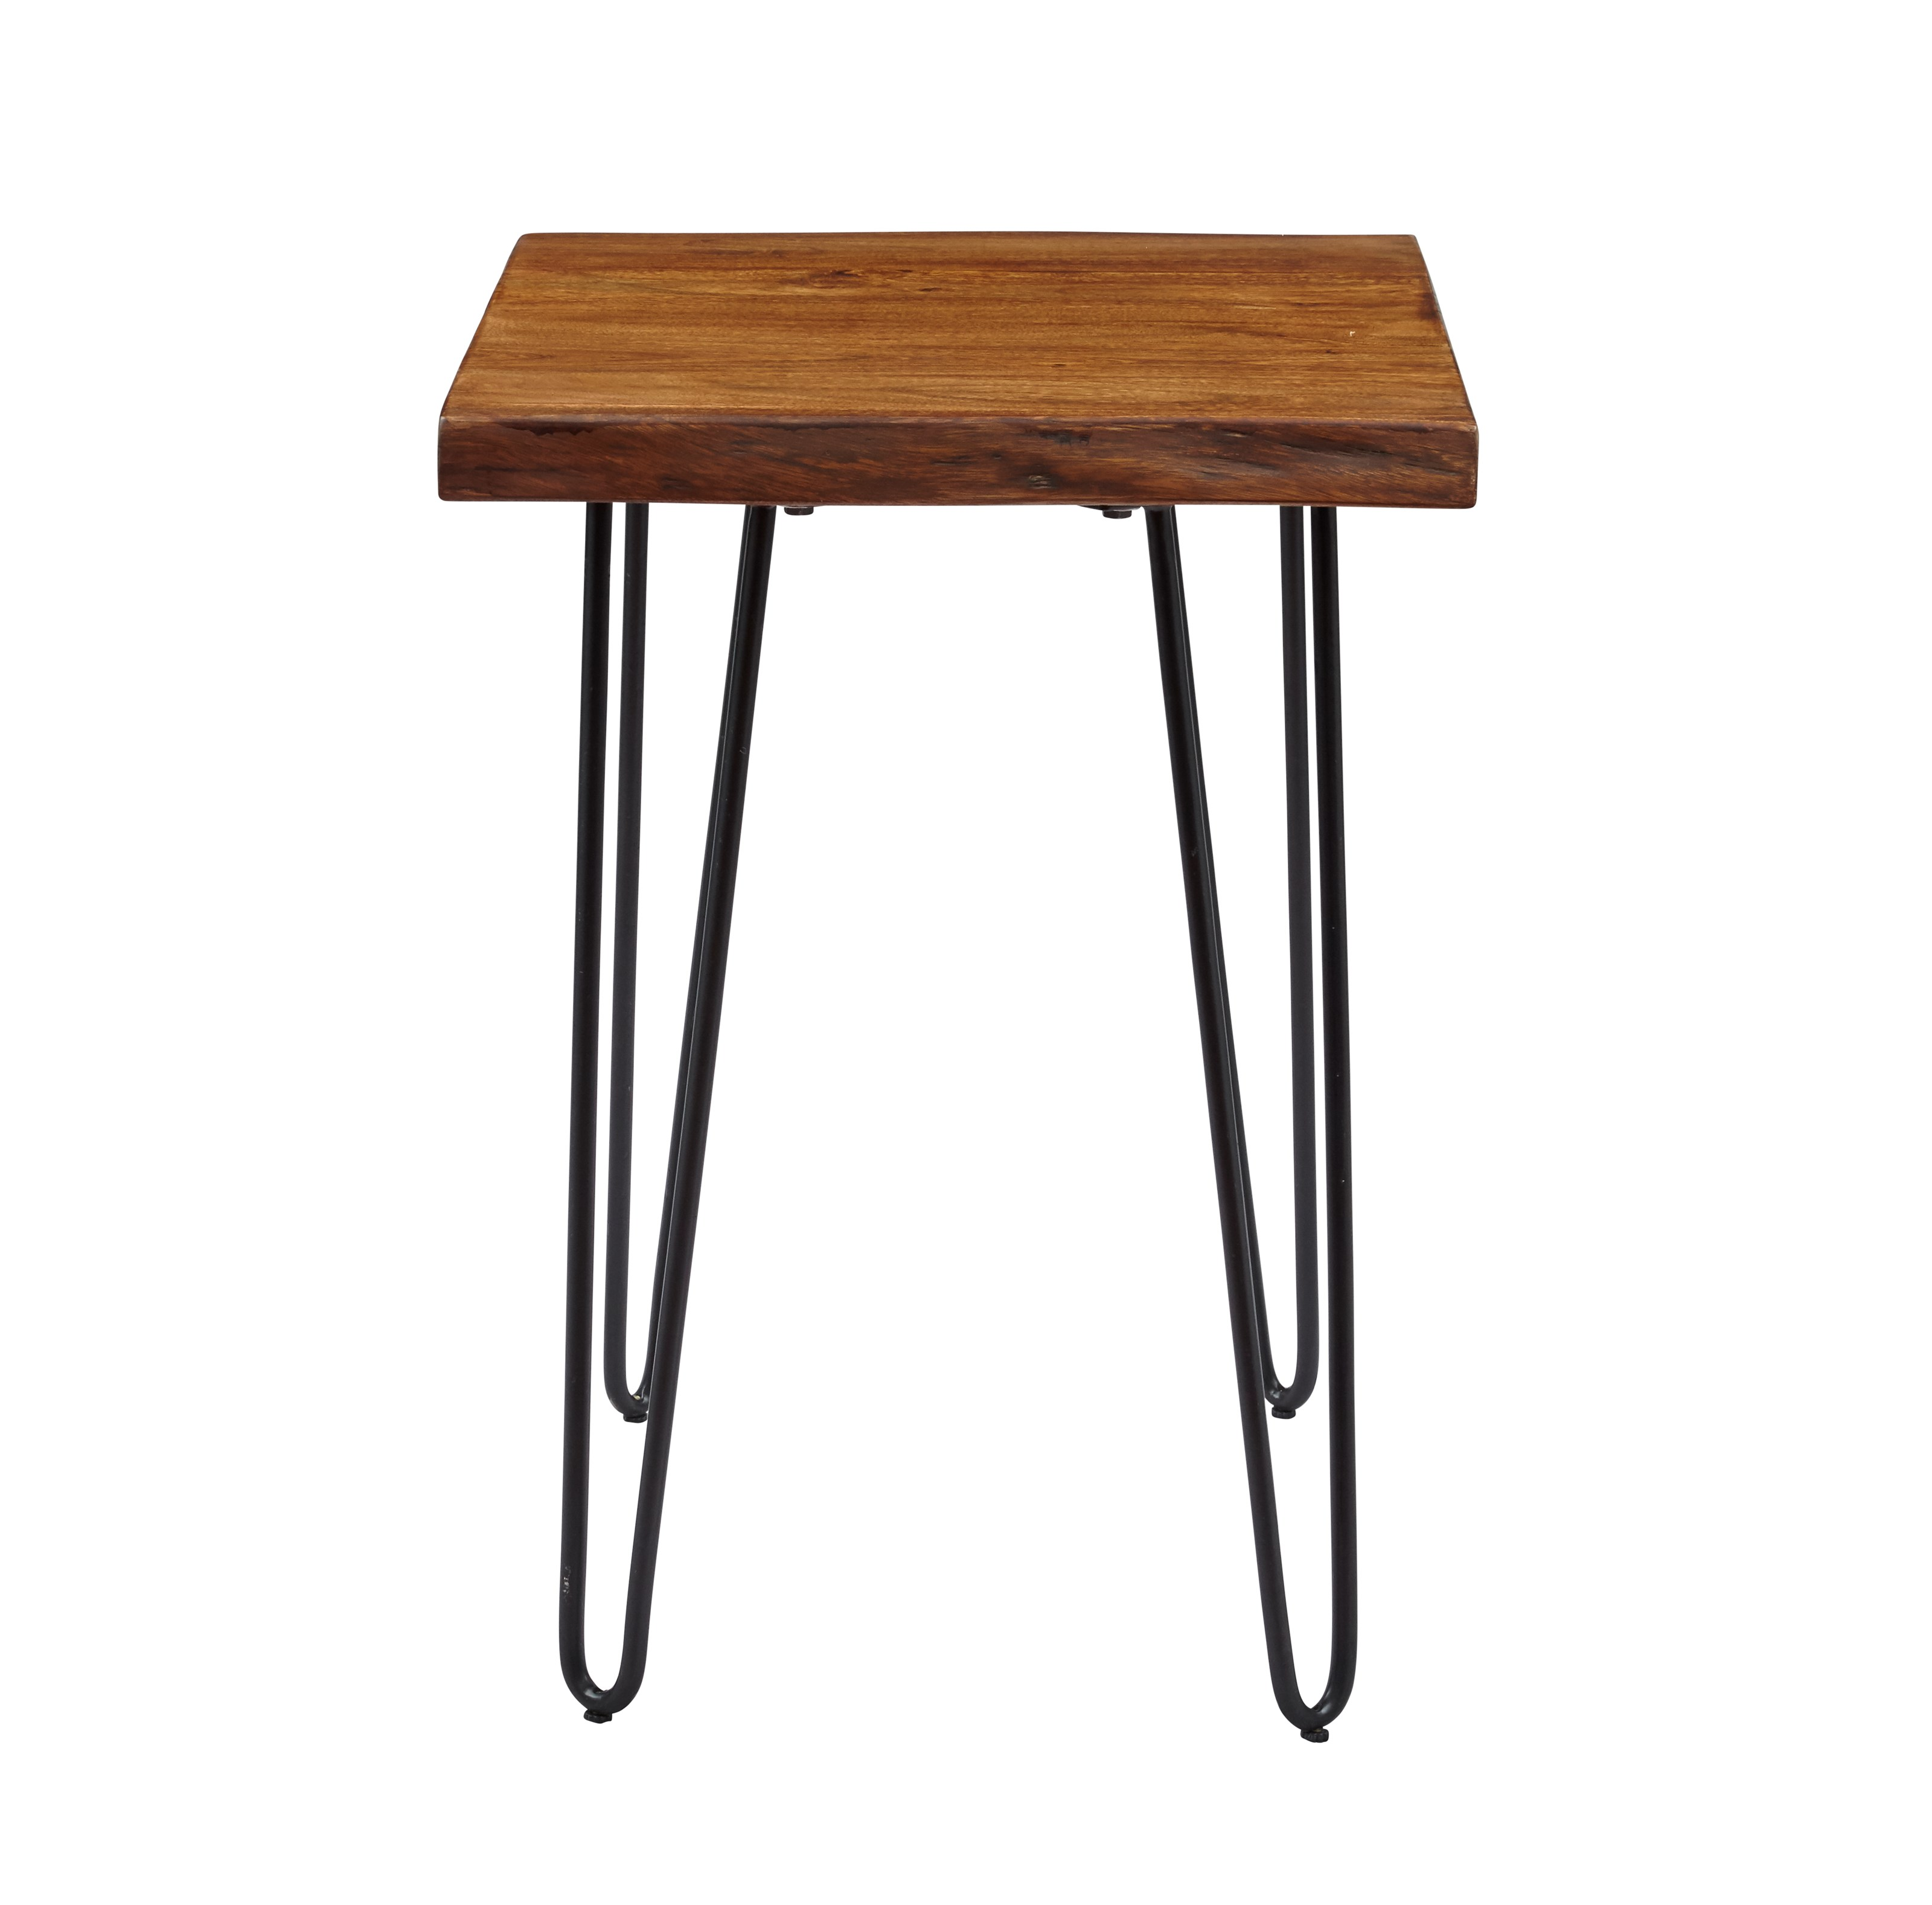 Nature's Edge Live Edge Chairside Table by Jofran at Mueller Furniture